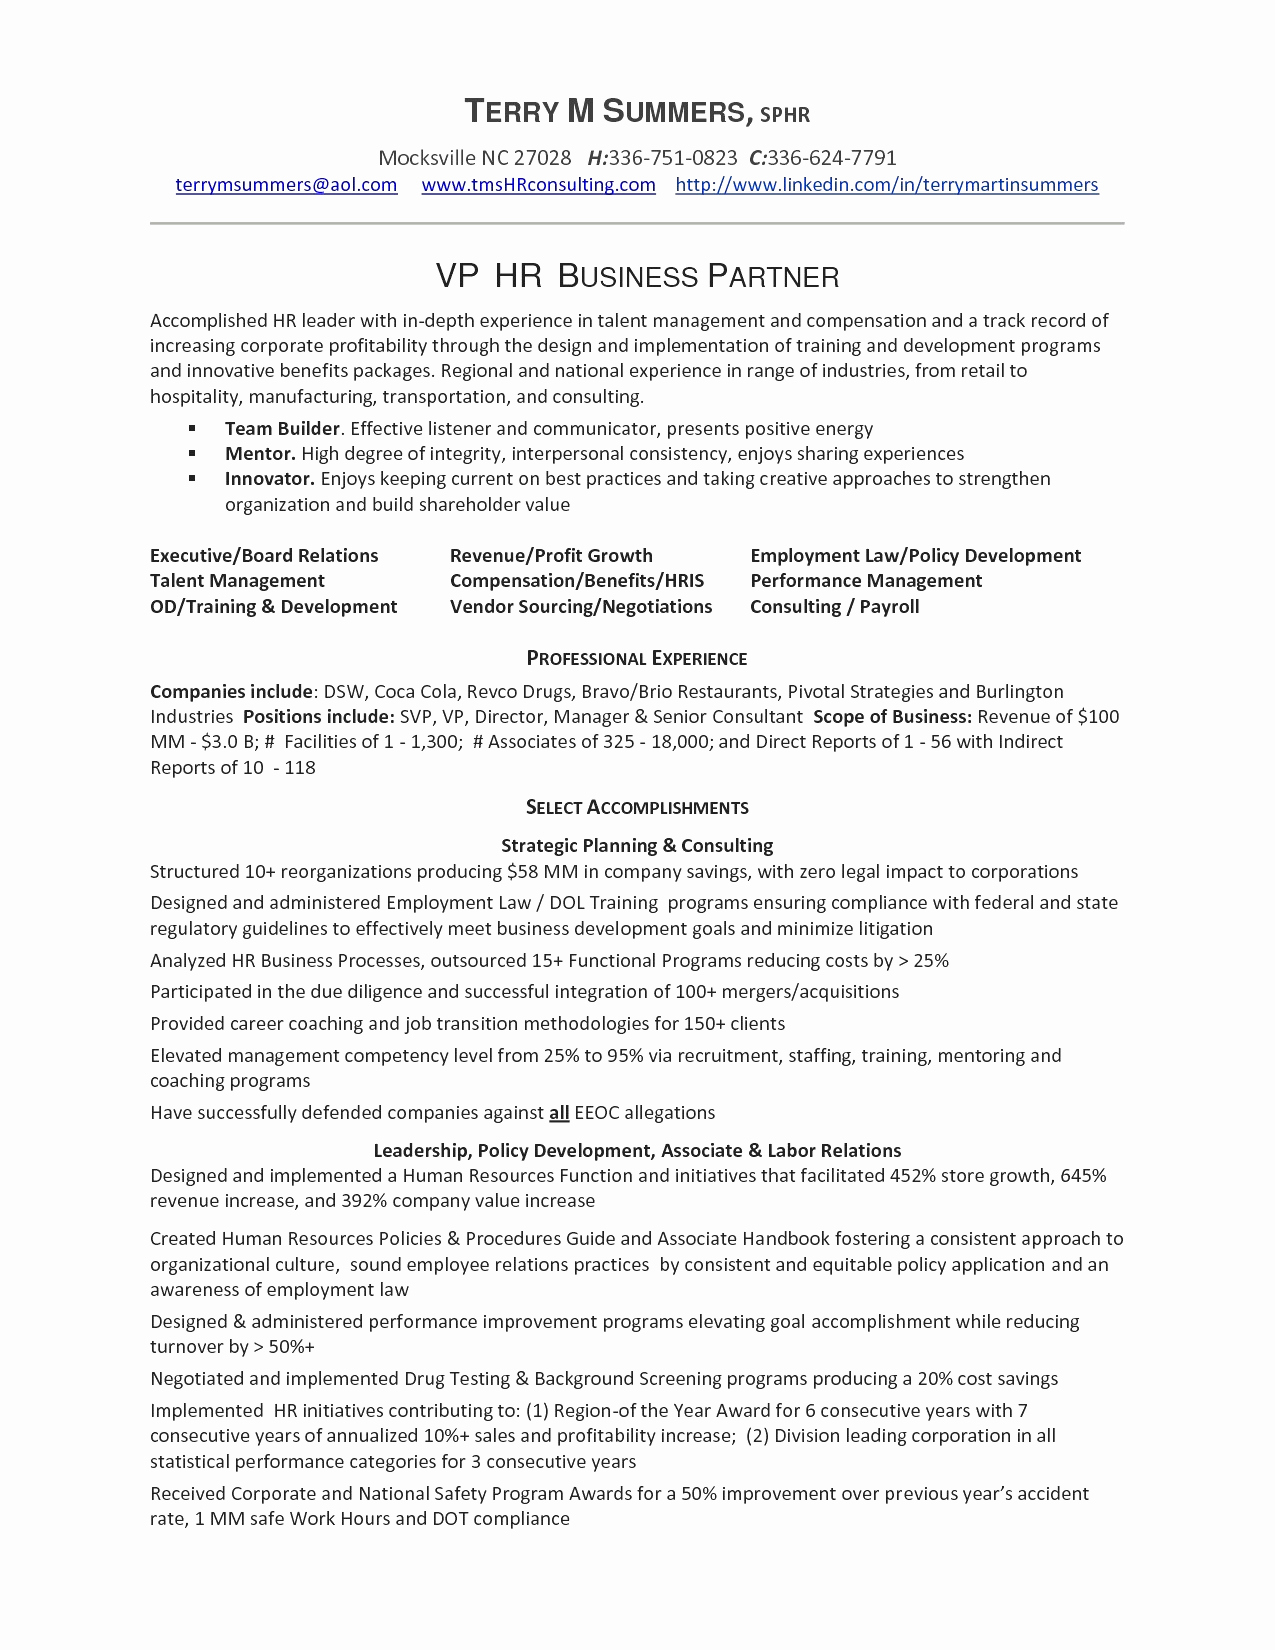 Fashion Merchandising Resume Examples - Fashion Merchandising Resume Examples Visual Merchandiser Resume